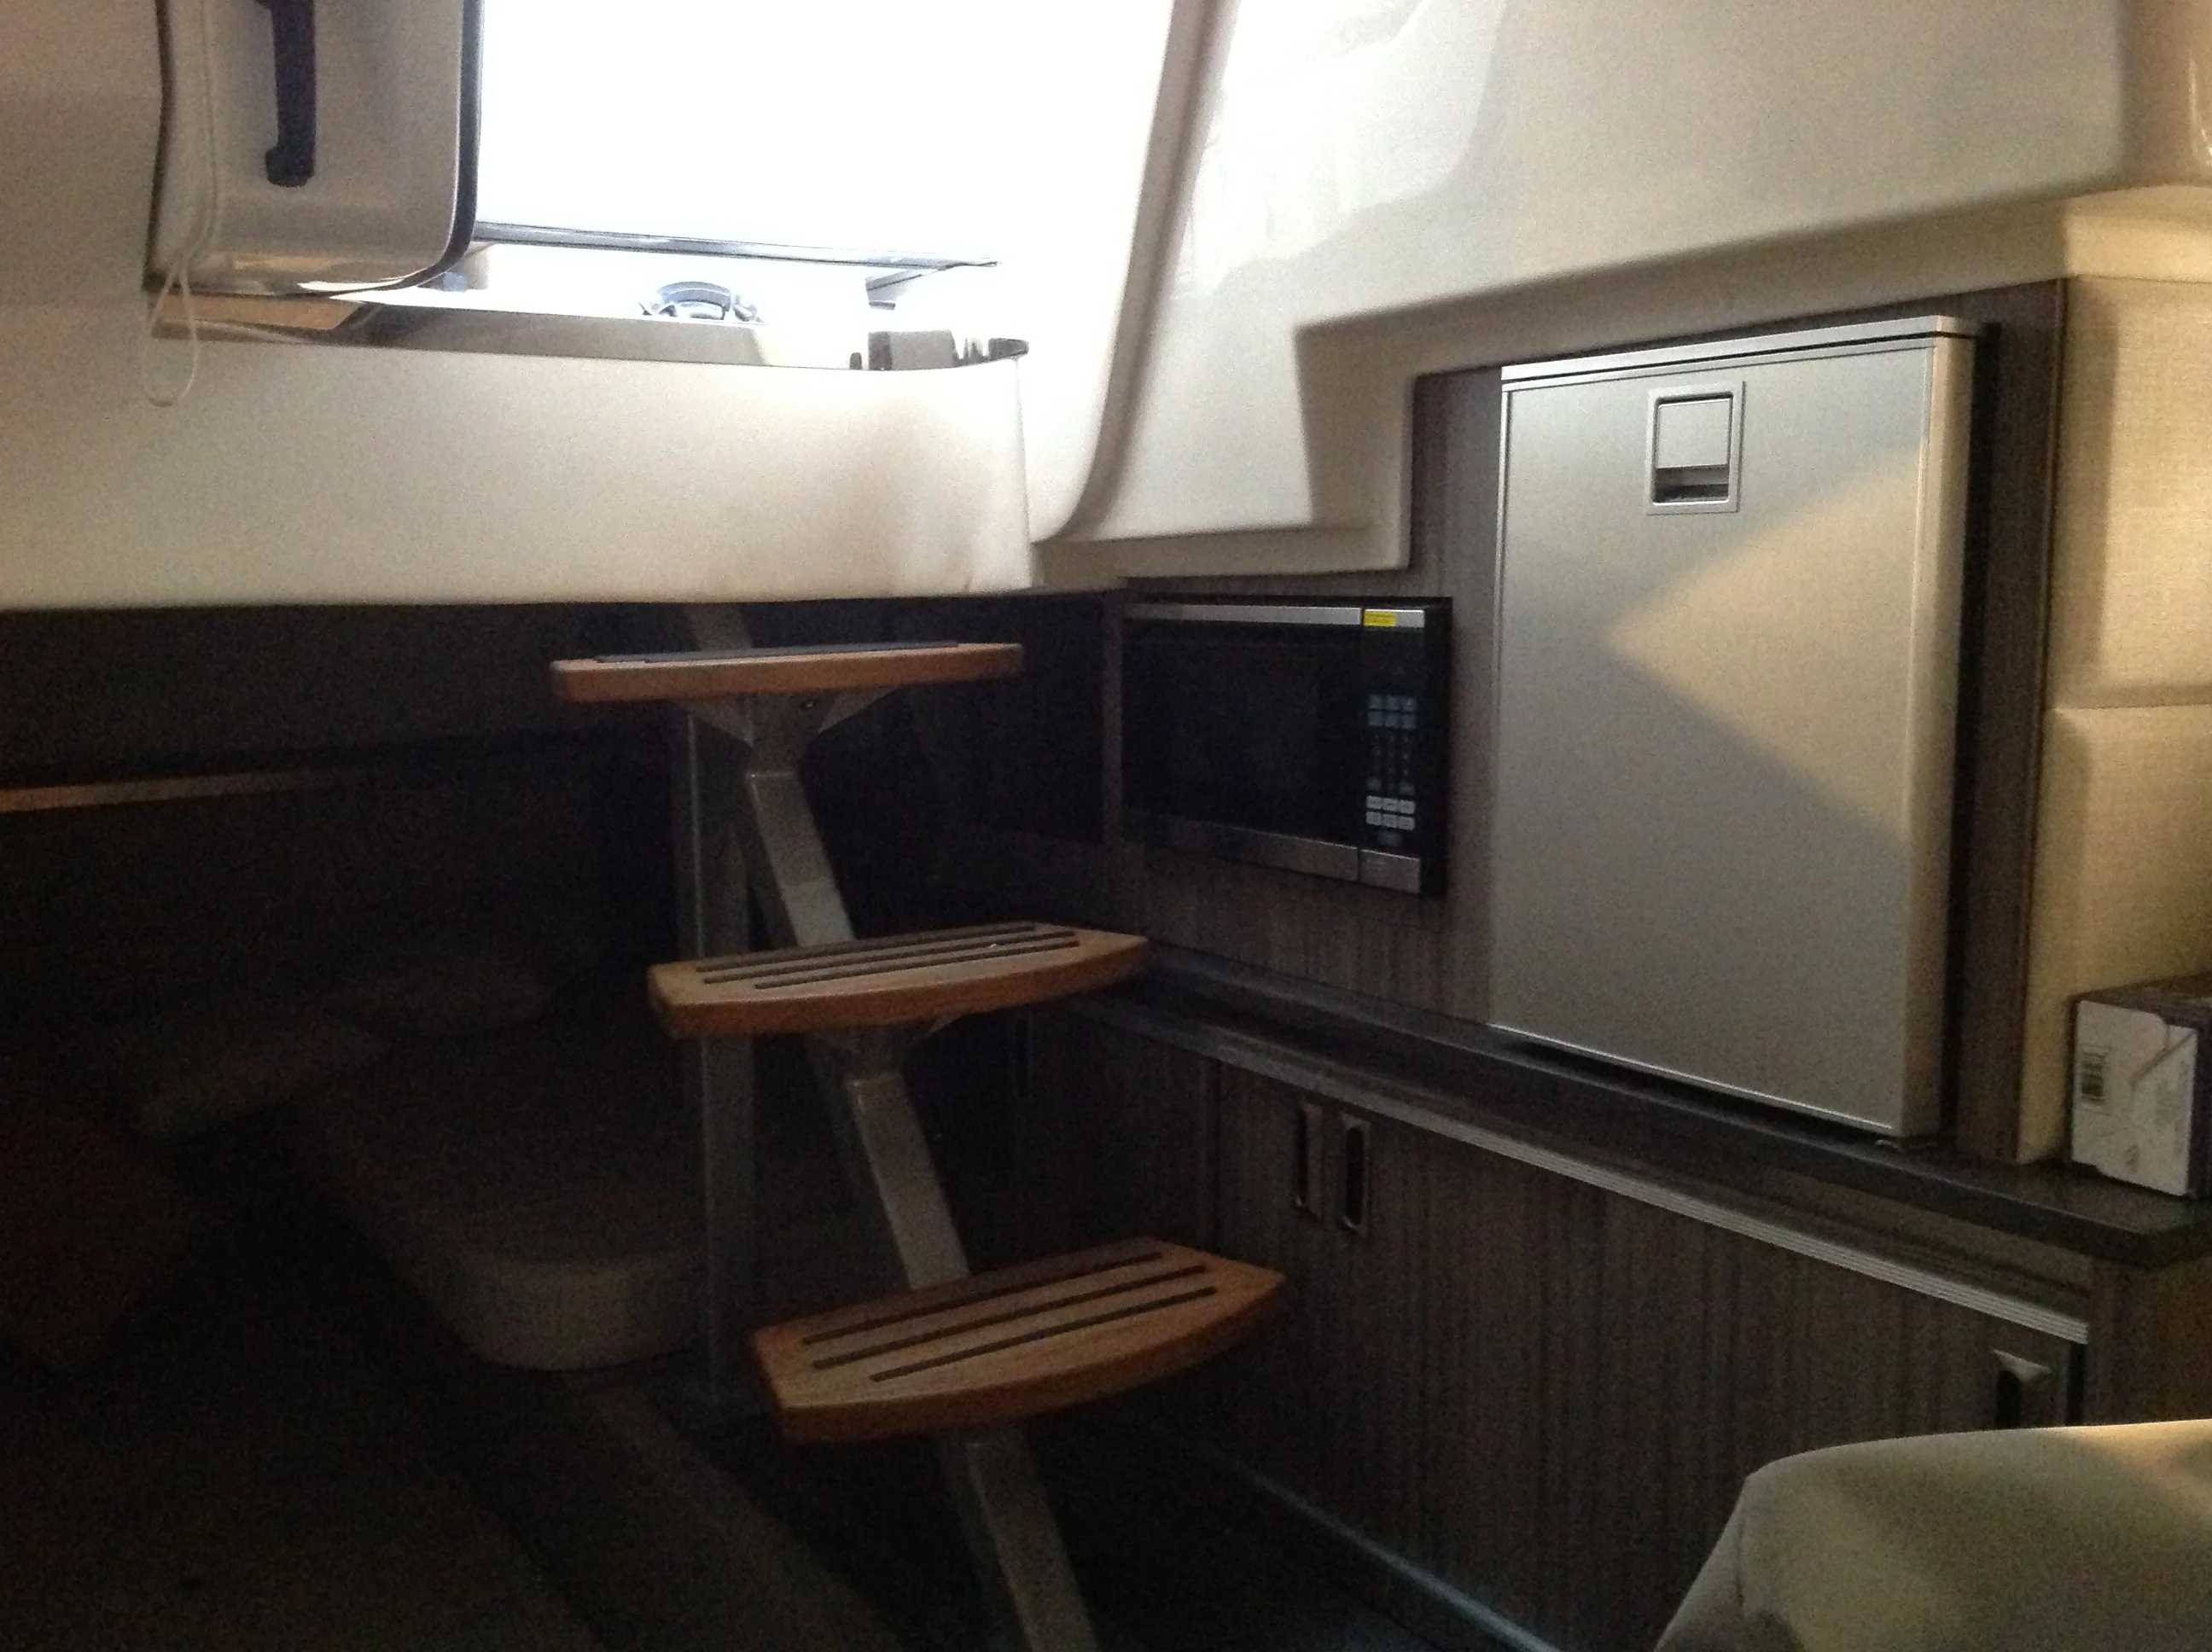 2021 Sea Ray boat for sale, model of the boat is 320 Sundancer & Image # 16 of 31